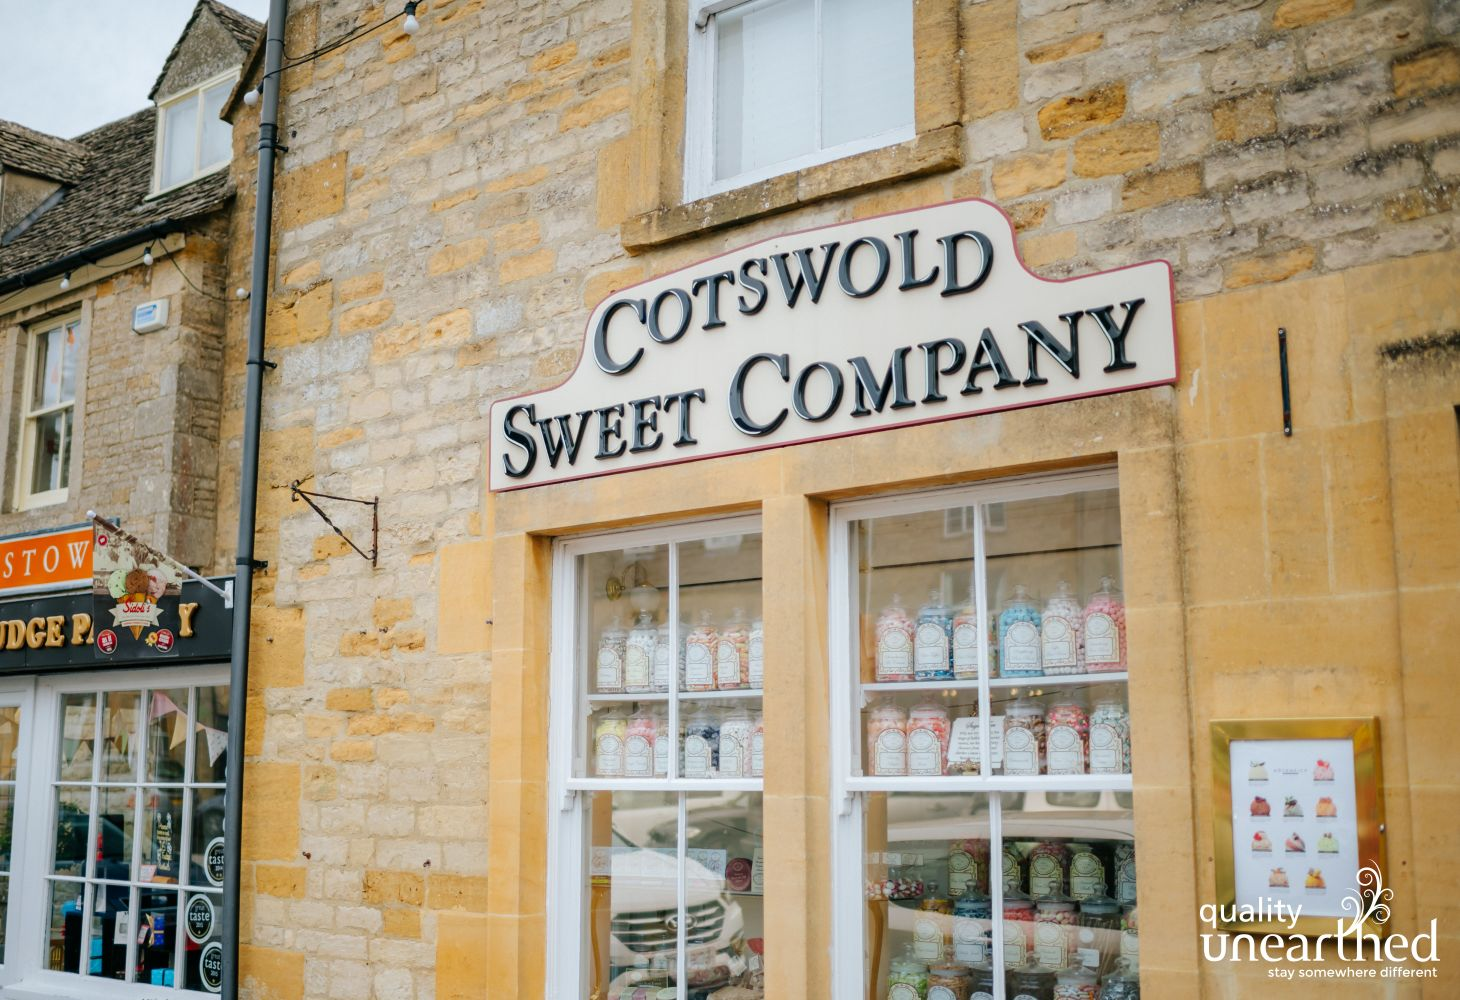 Stow On The Wold has the Cotswold Sweet company